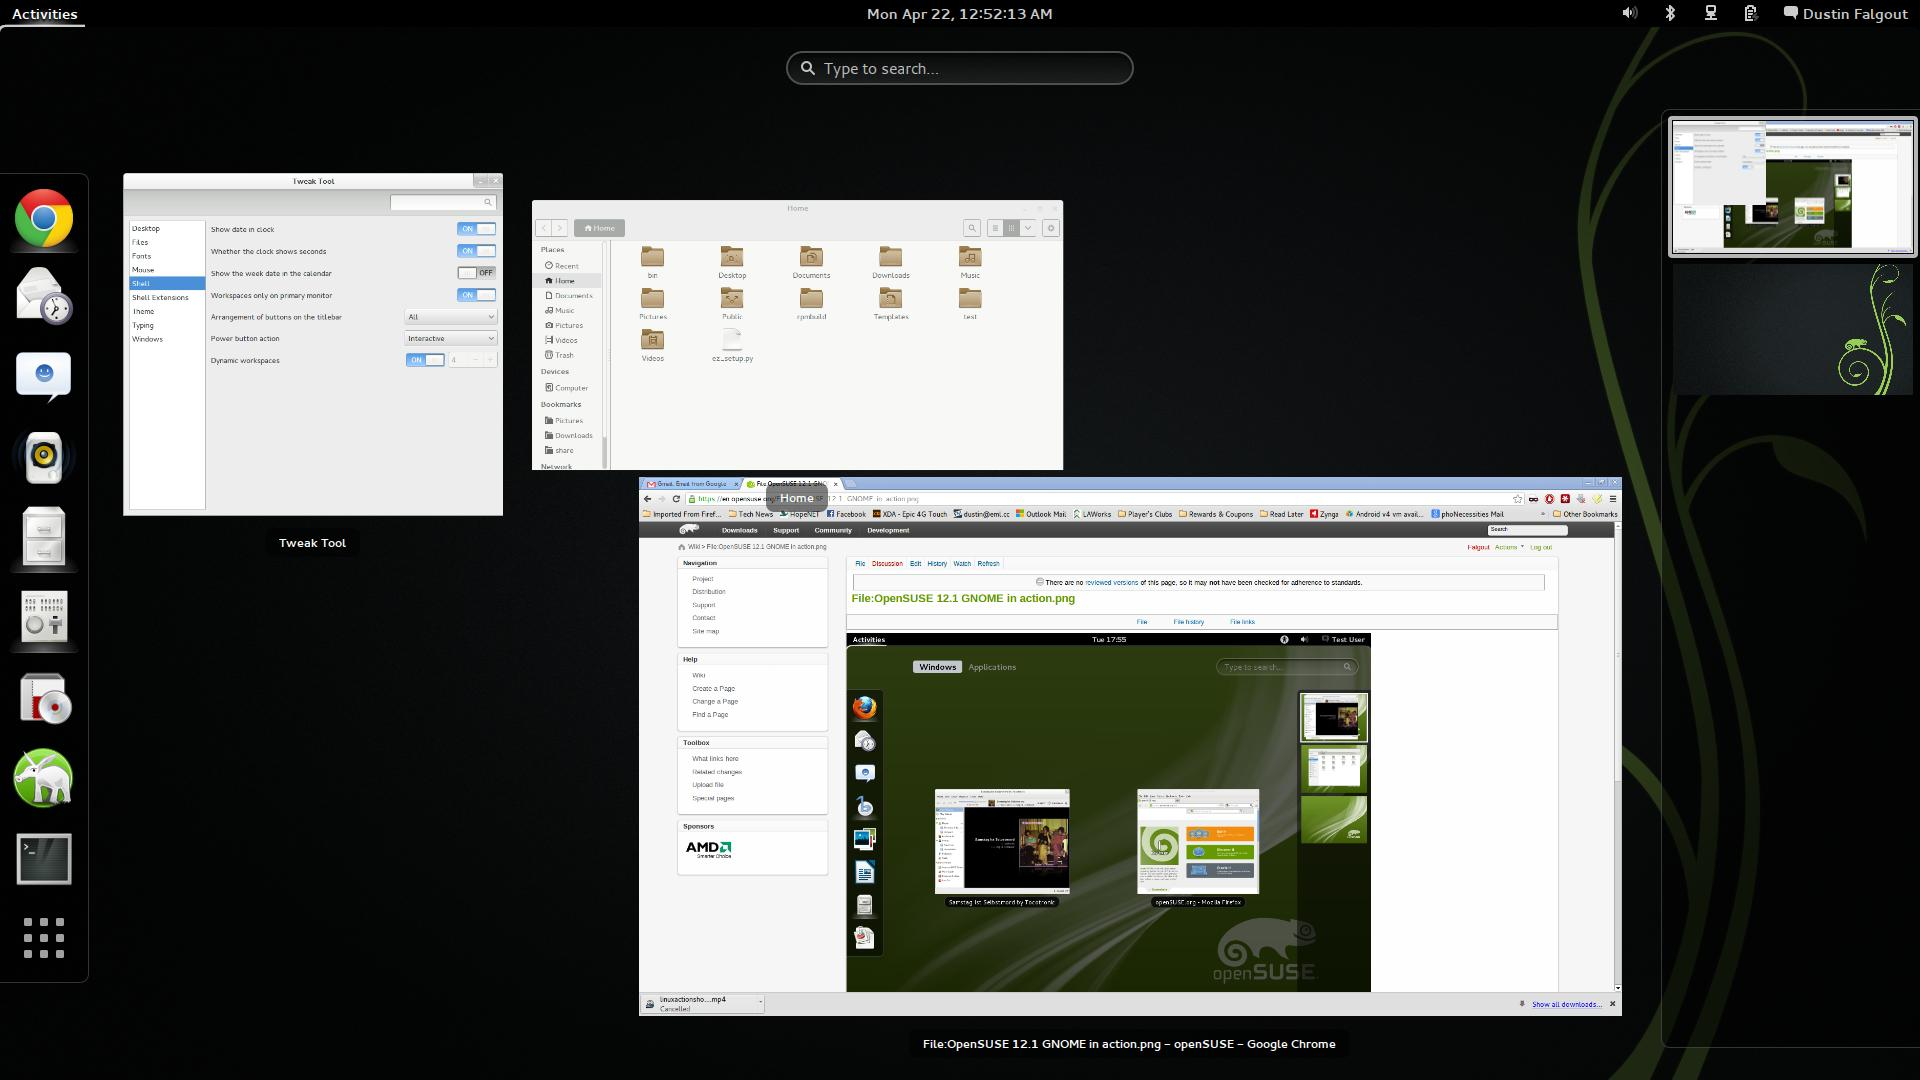 GNOME 3.8 Screenshot-activities.jpg